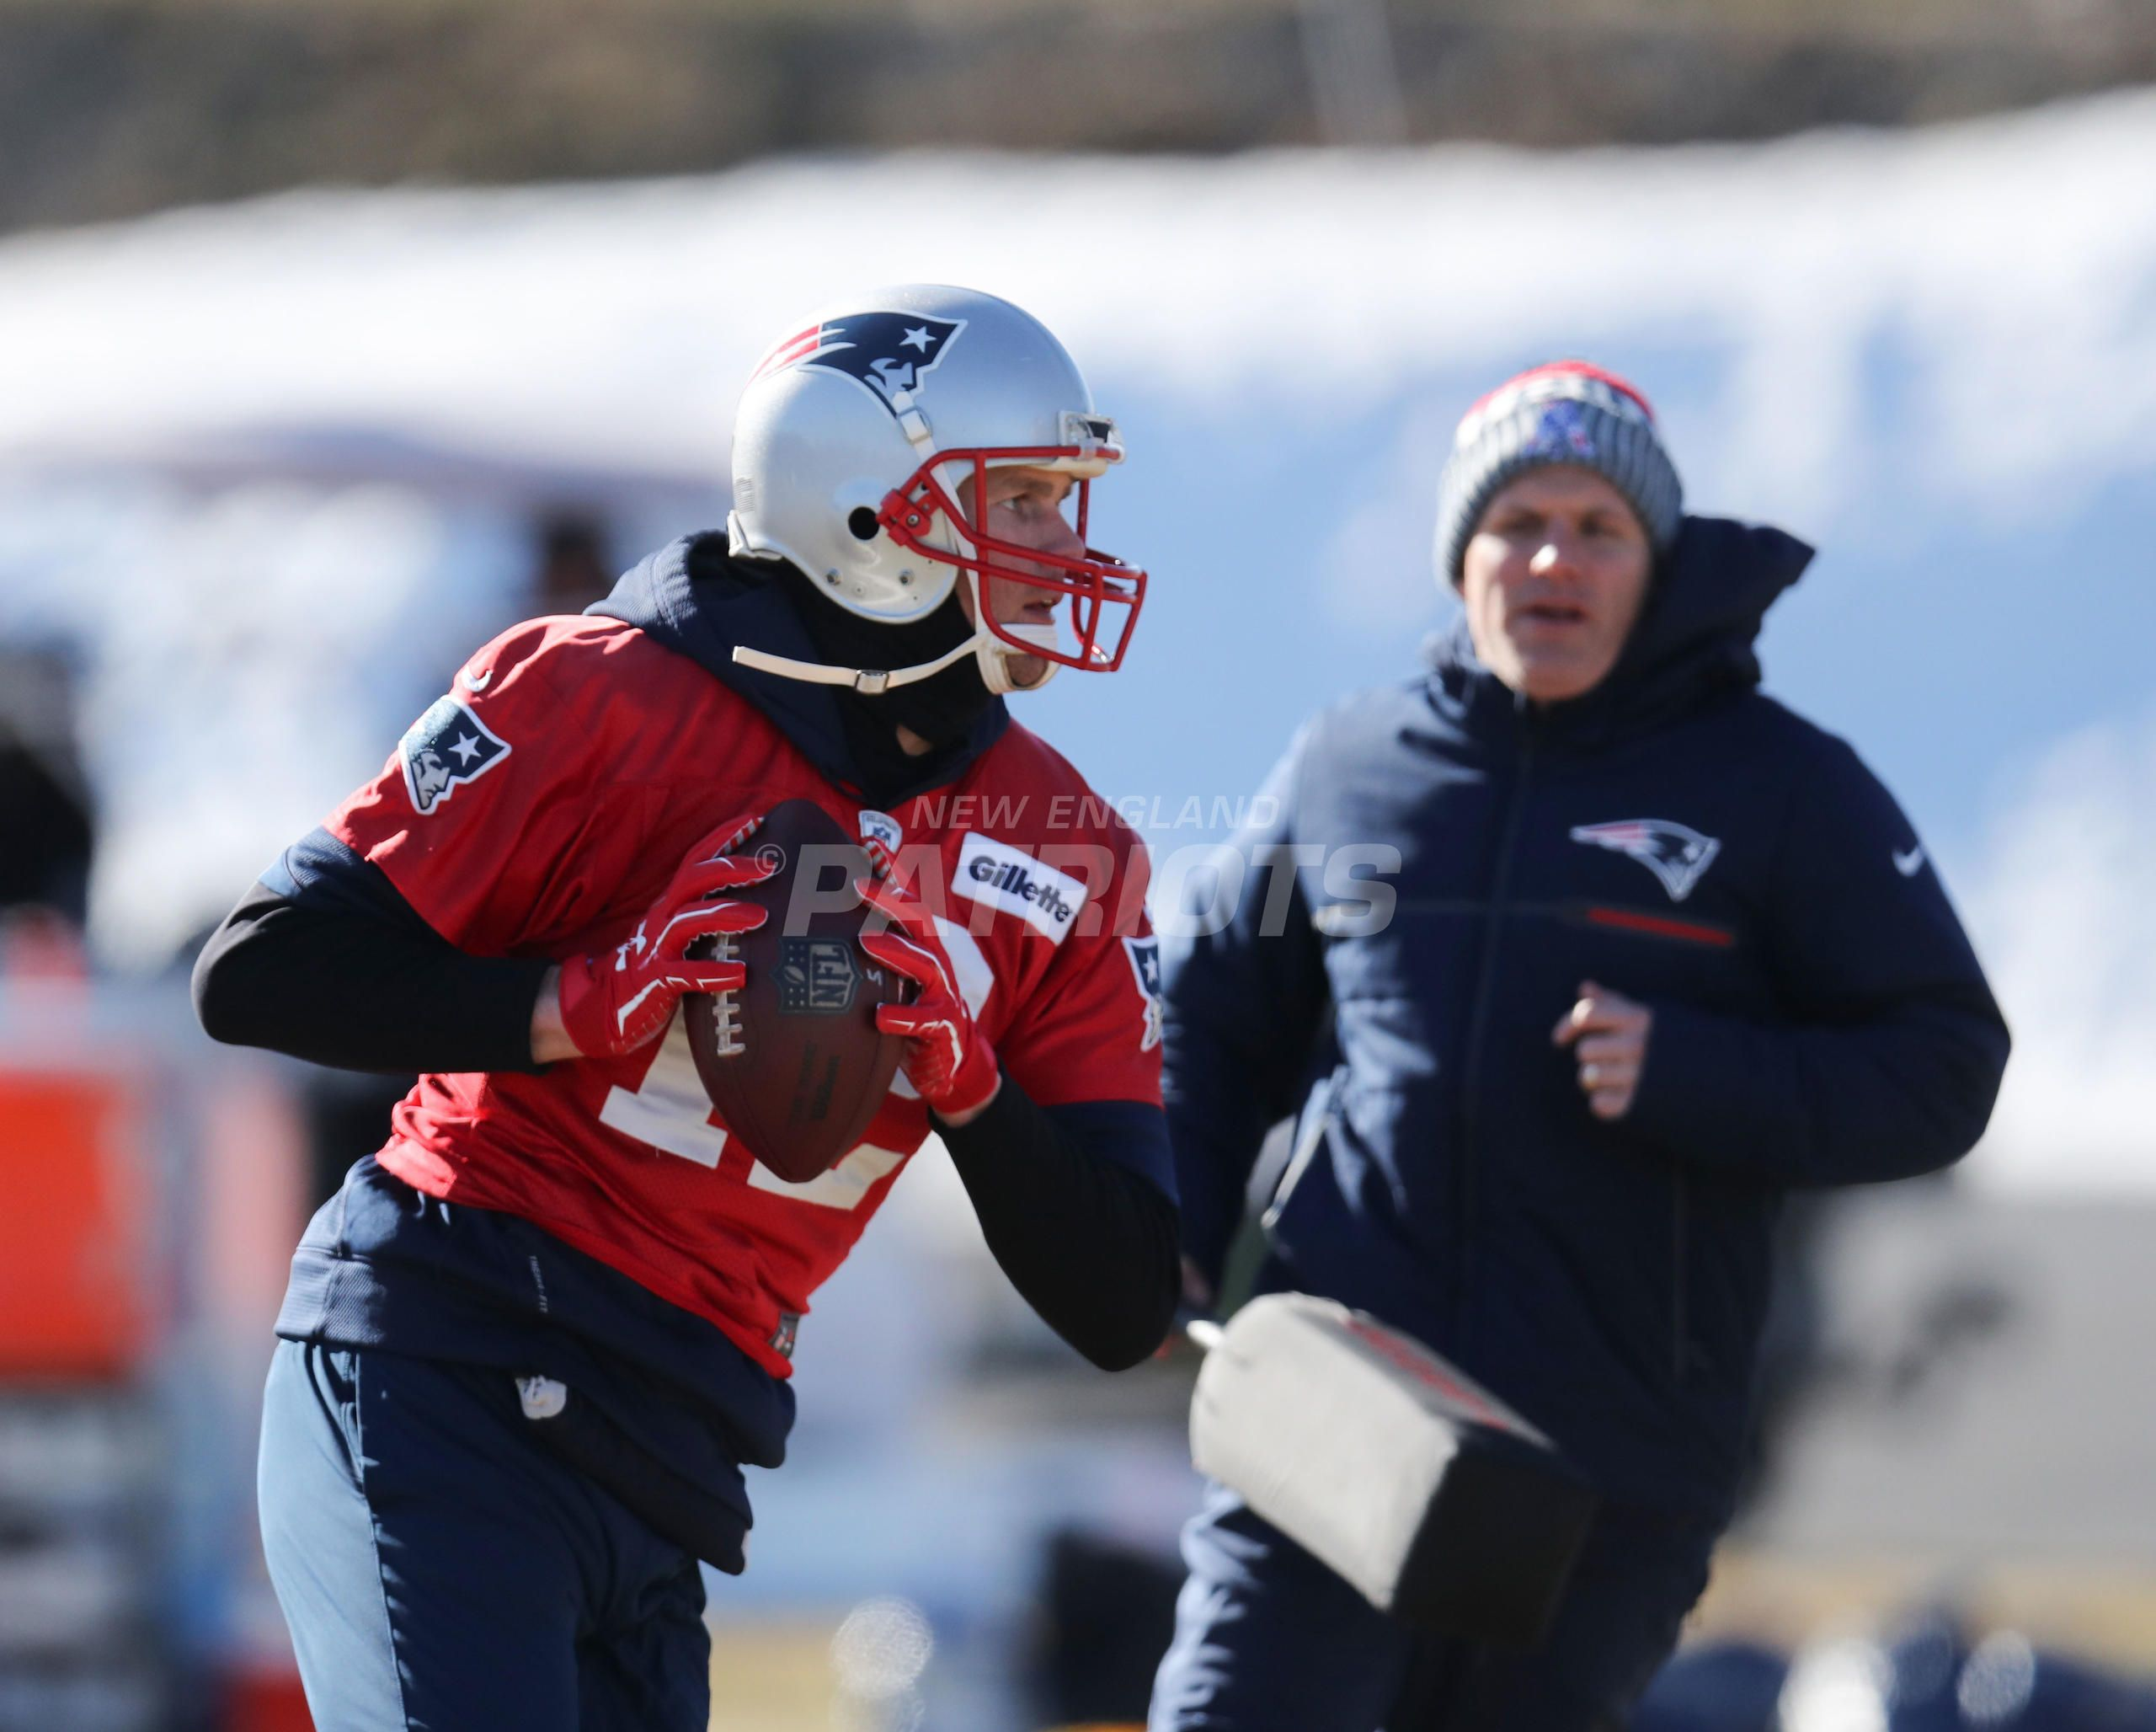 Patriots Commence Sb Lii Bye Week Practices New England Patriots Patriots Patriots News